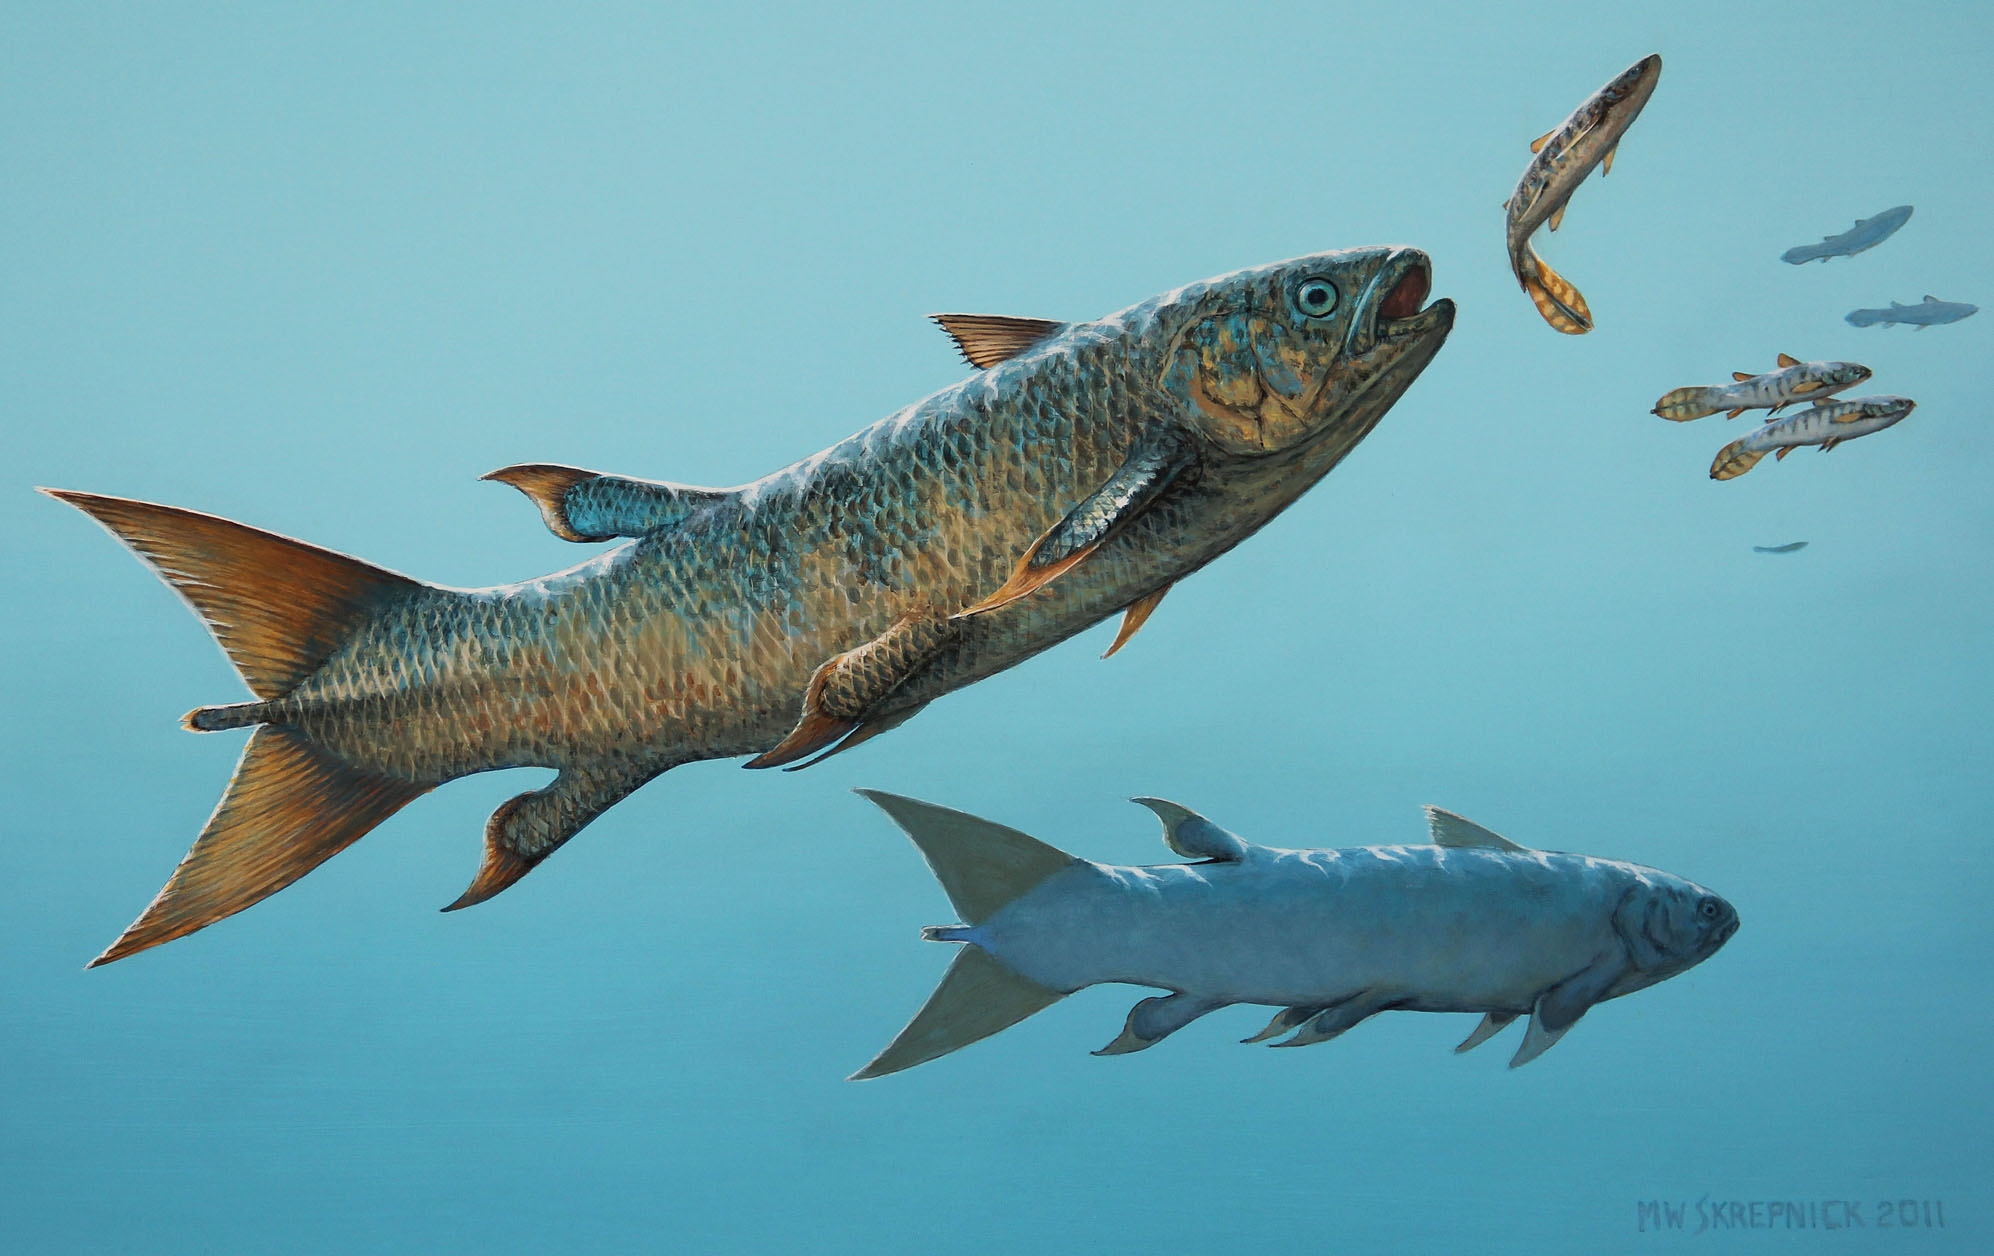 An ancient killer coelacanth from canada for Did humans evolve from fish